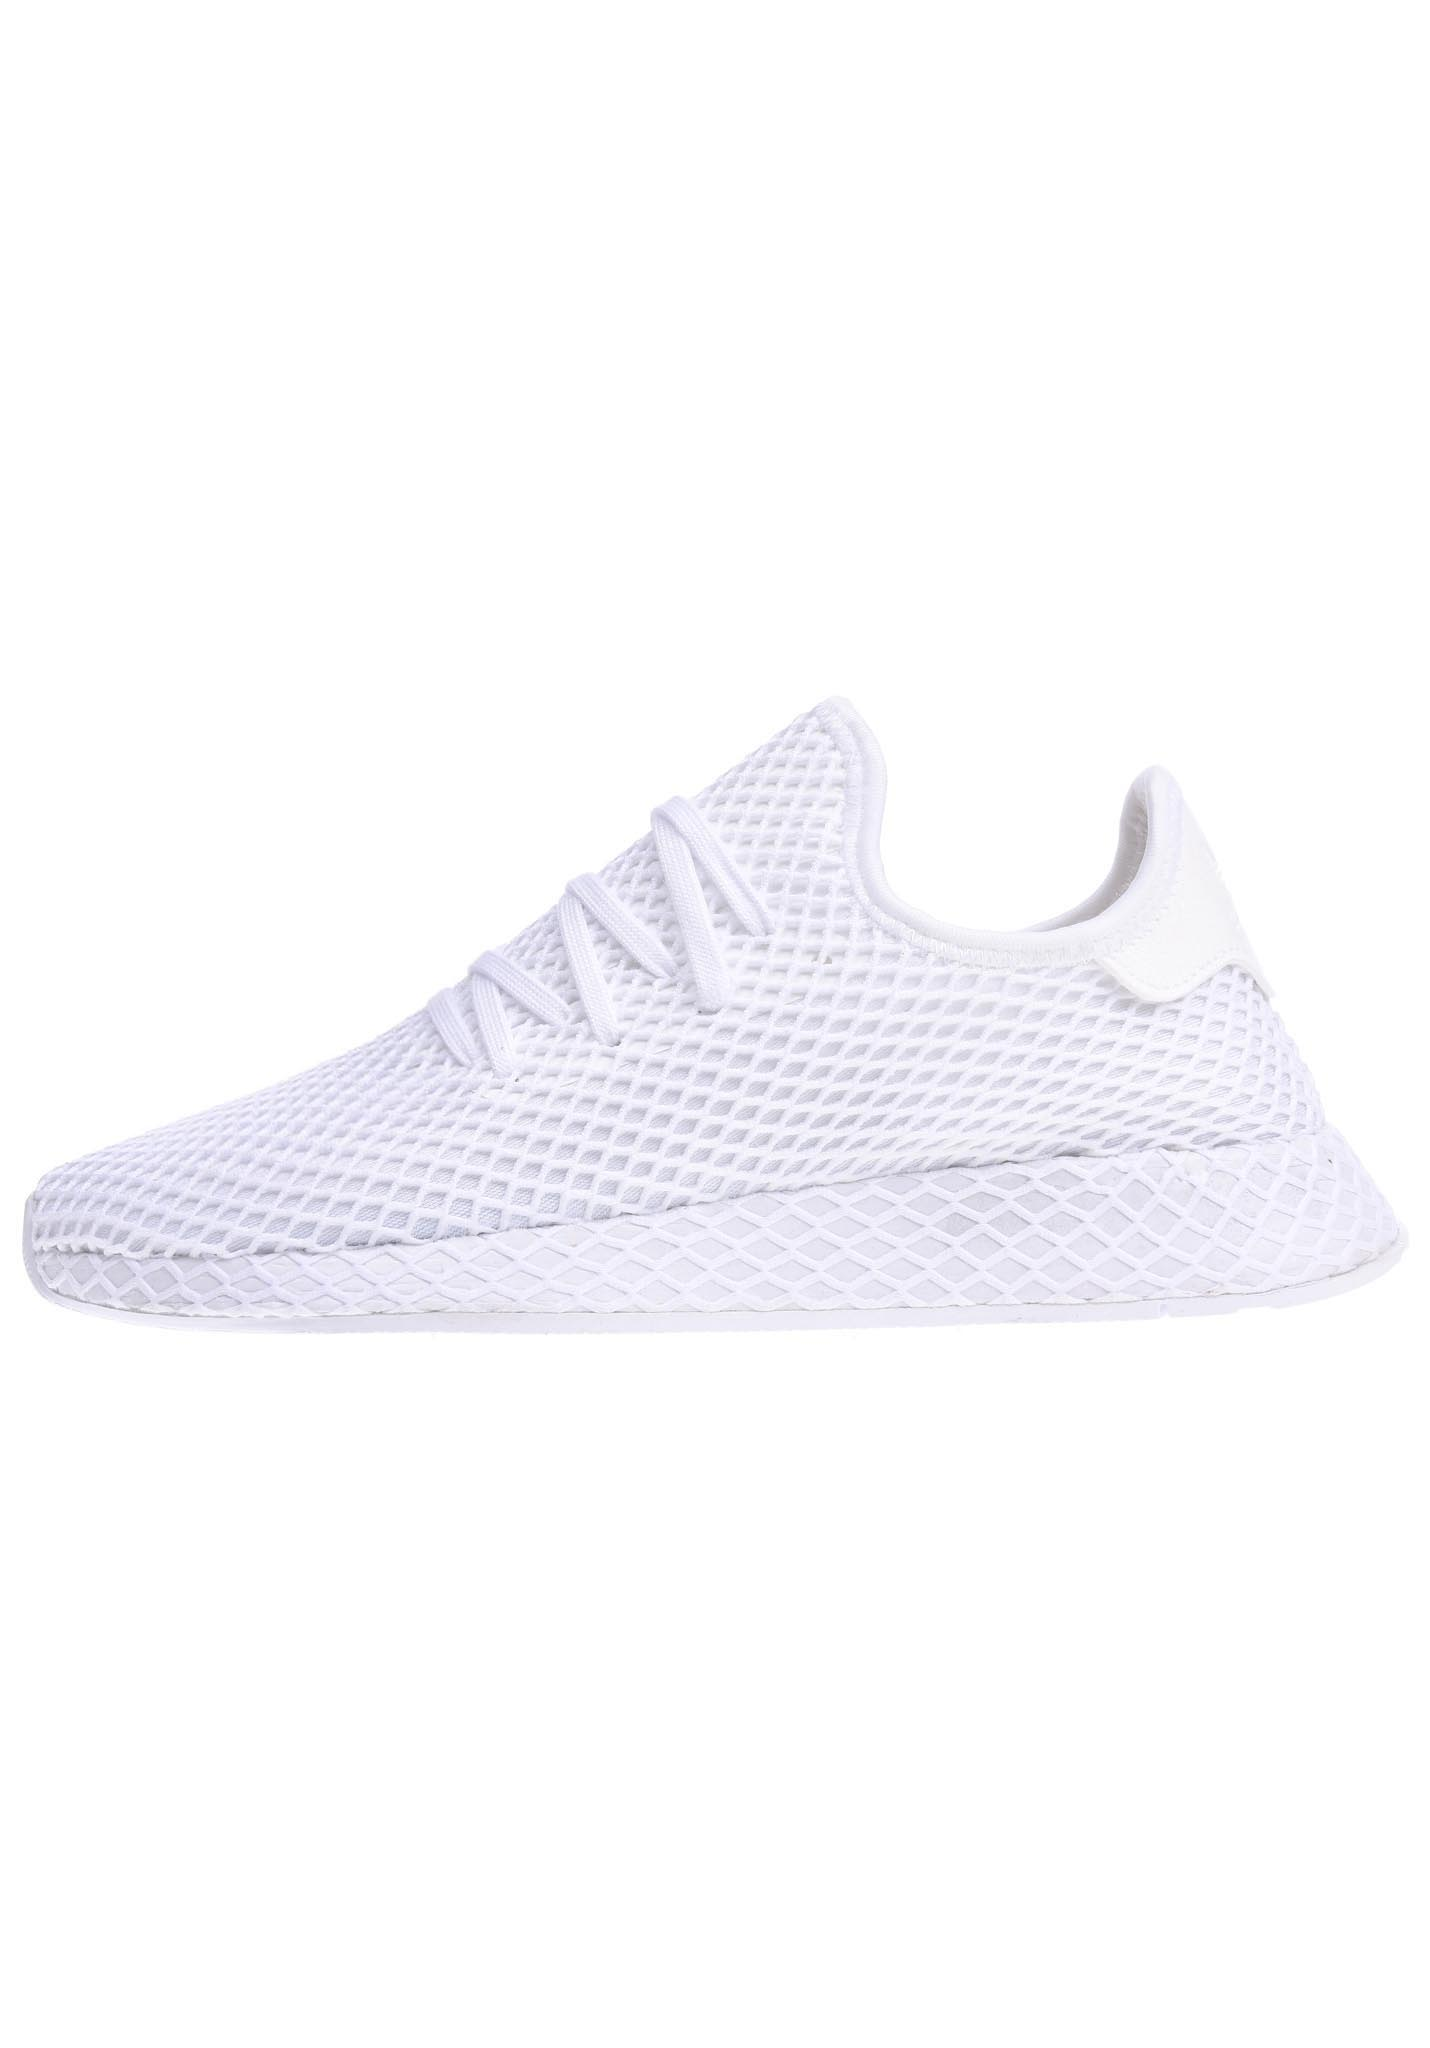 promo code fcc7f 1e3b1 ADIDAS ORIGINALS Deerupt Runner - Sneakers for Men - White - Planet Sports